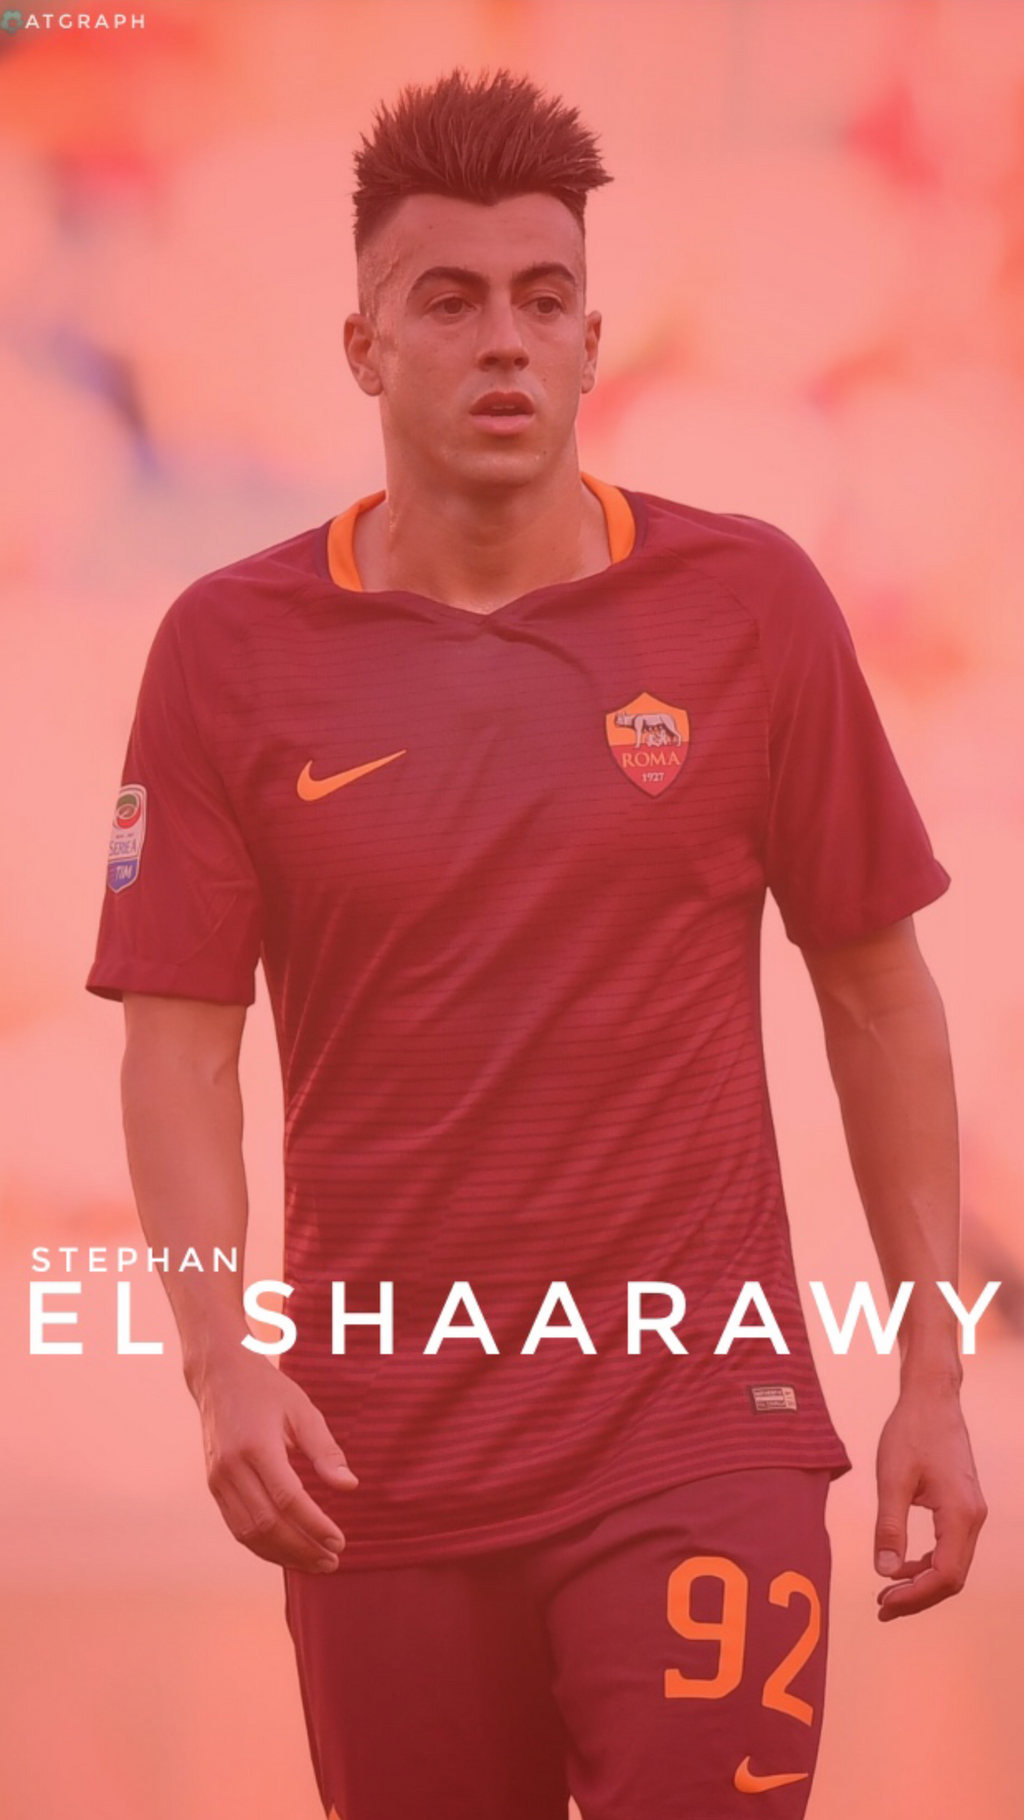 Simone padoin wallpaper hd by atgraph on deviantart stephan el shaarawy sfondo iphone by atgraph voltagebd Gallery